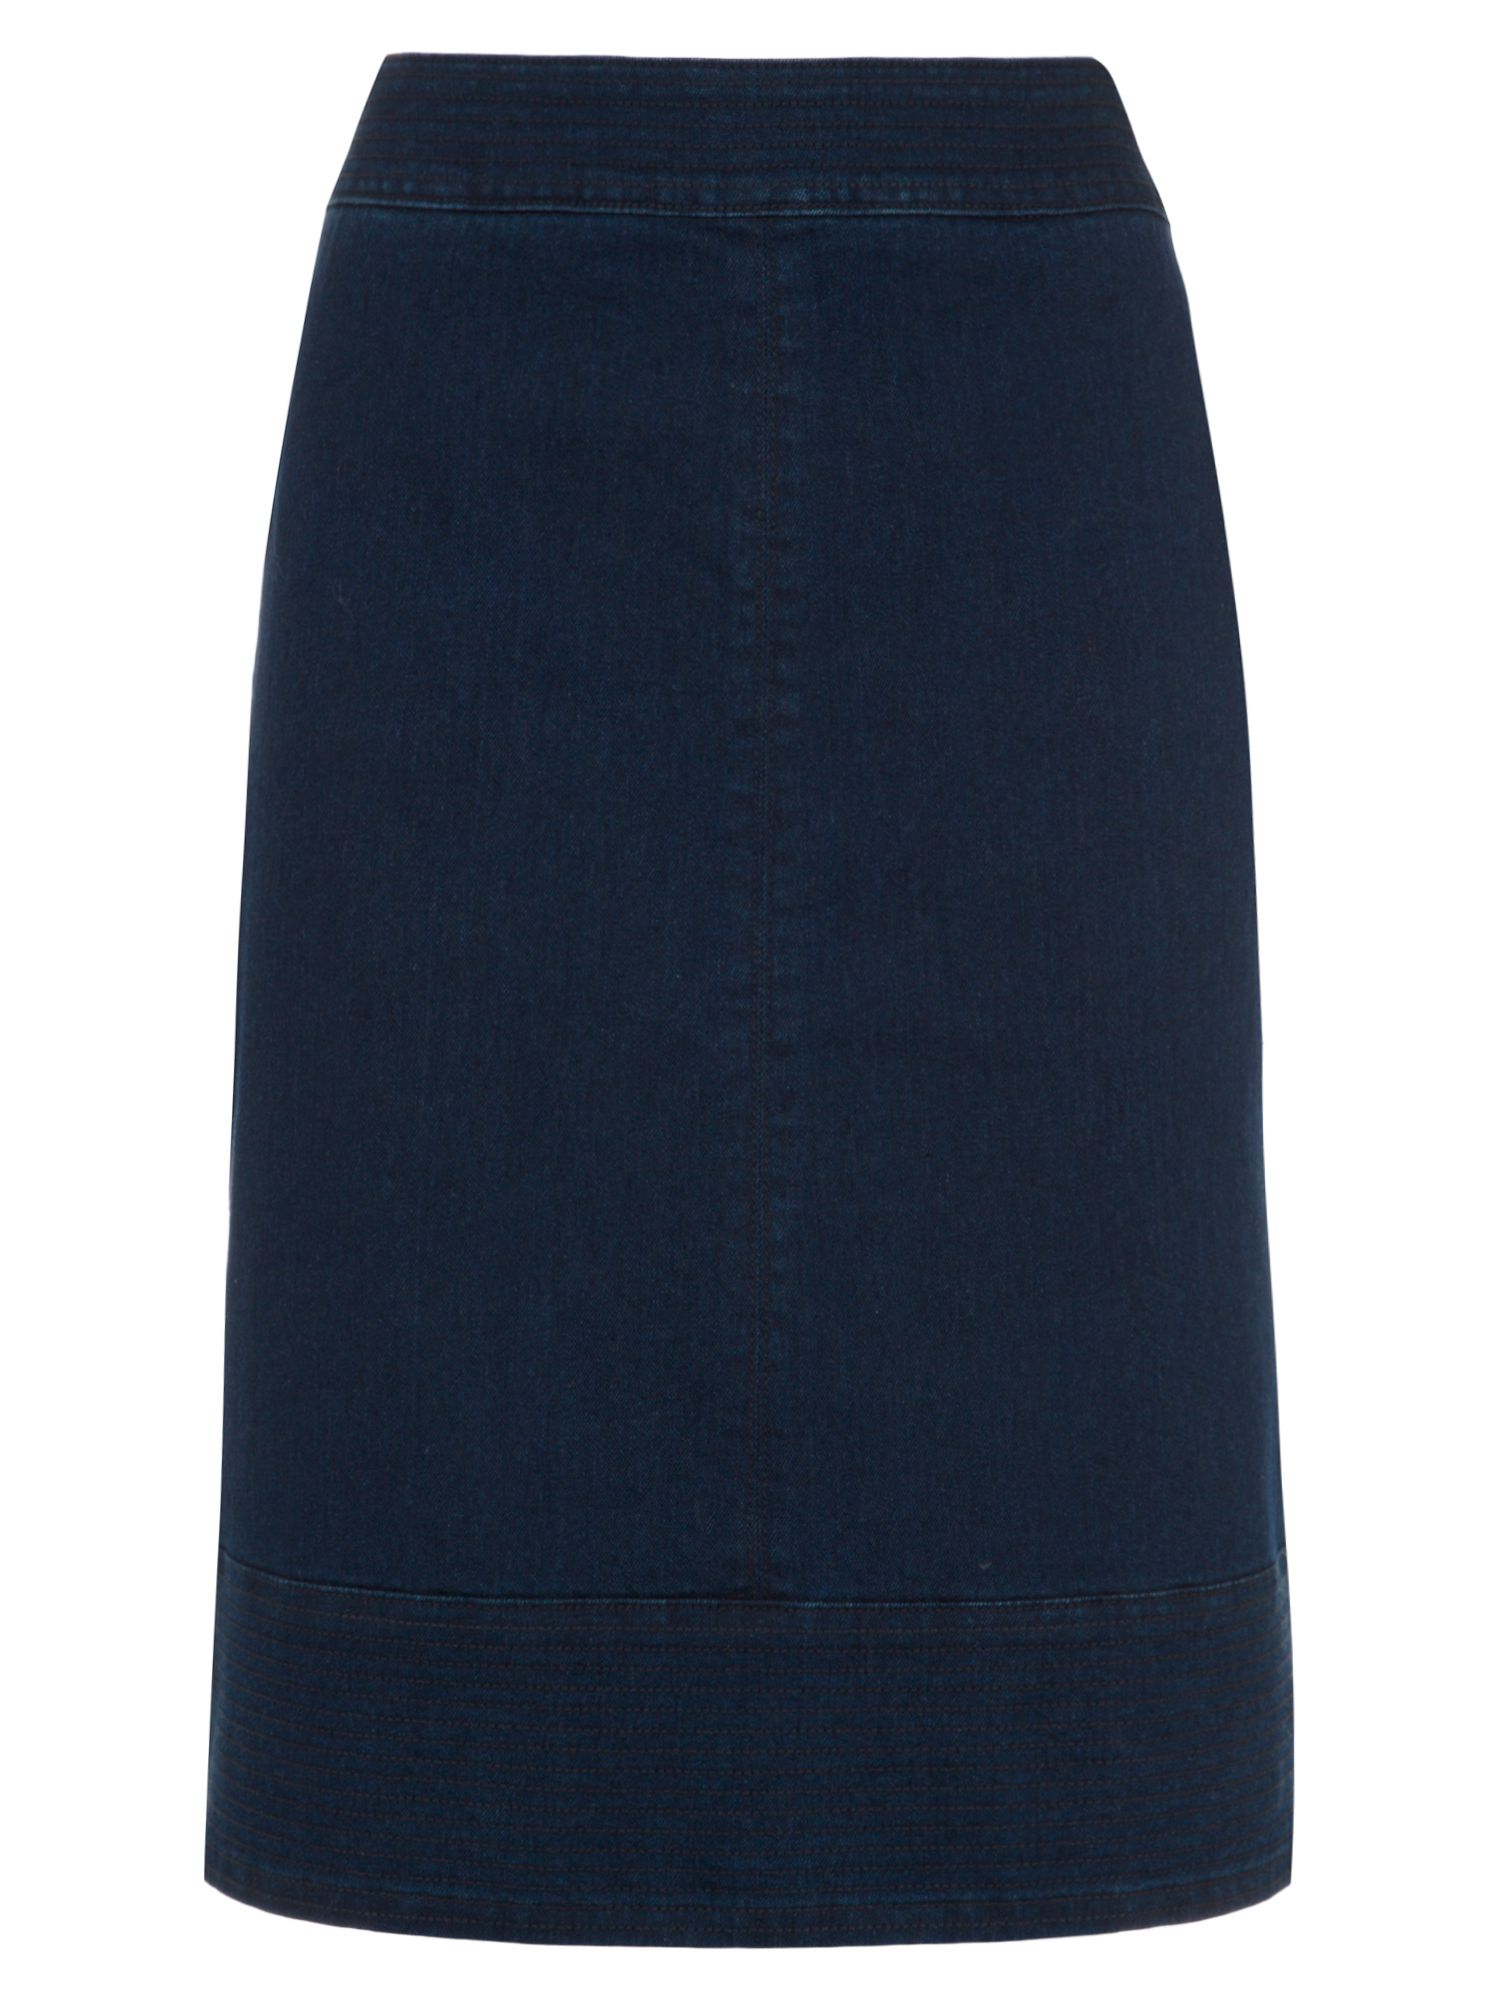 Stitch hem denim skirt